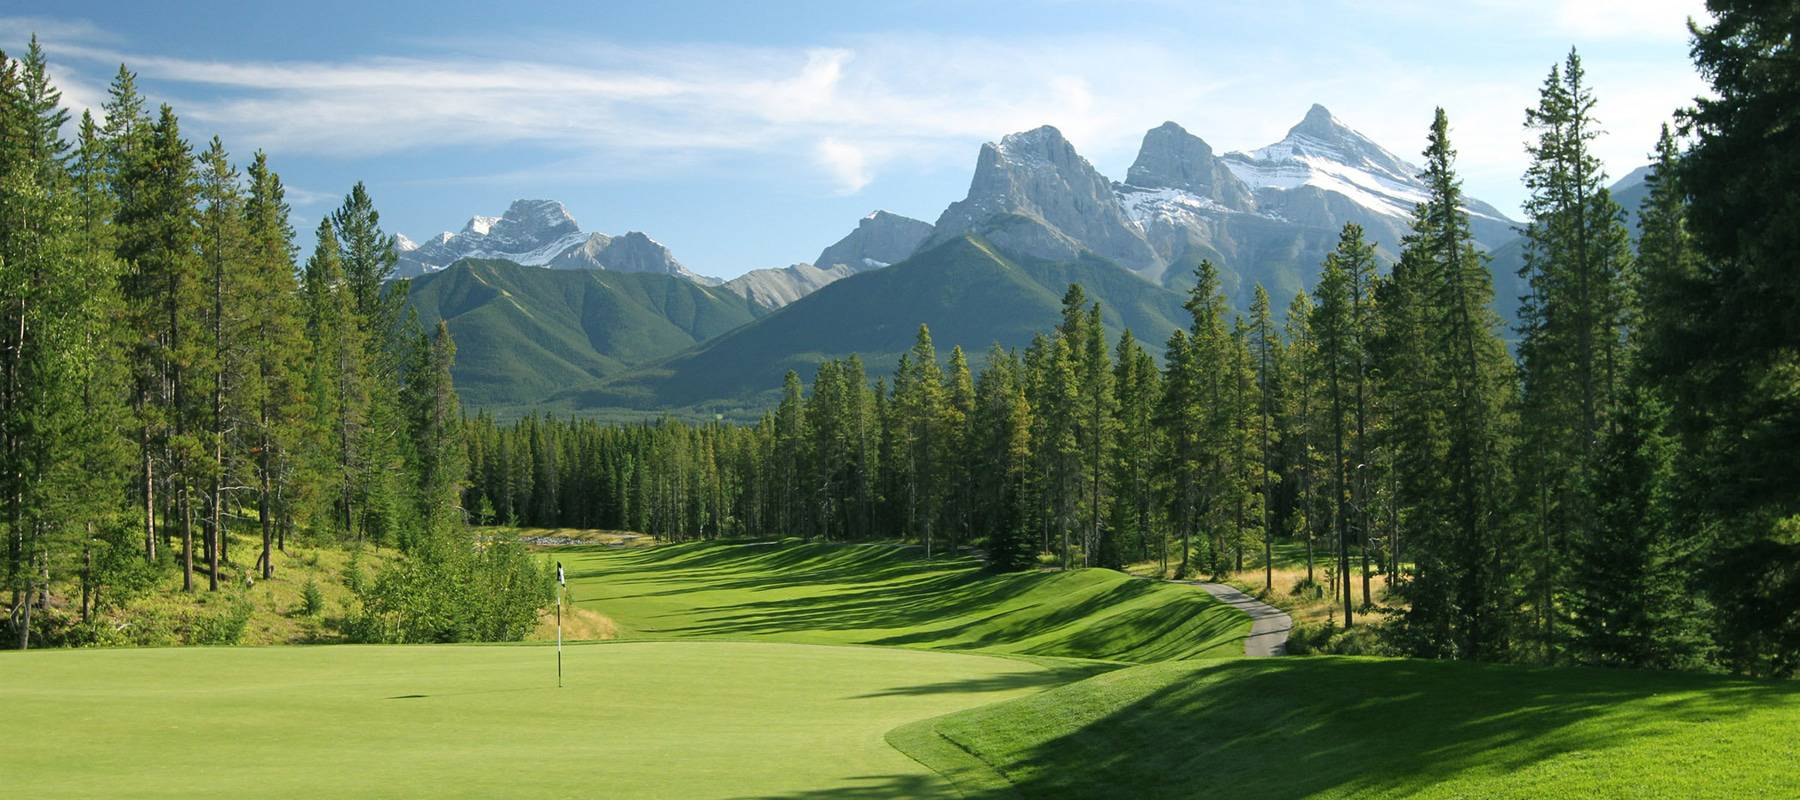 Canada golf packages, golf vacation packages